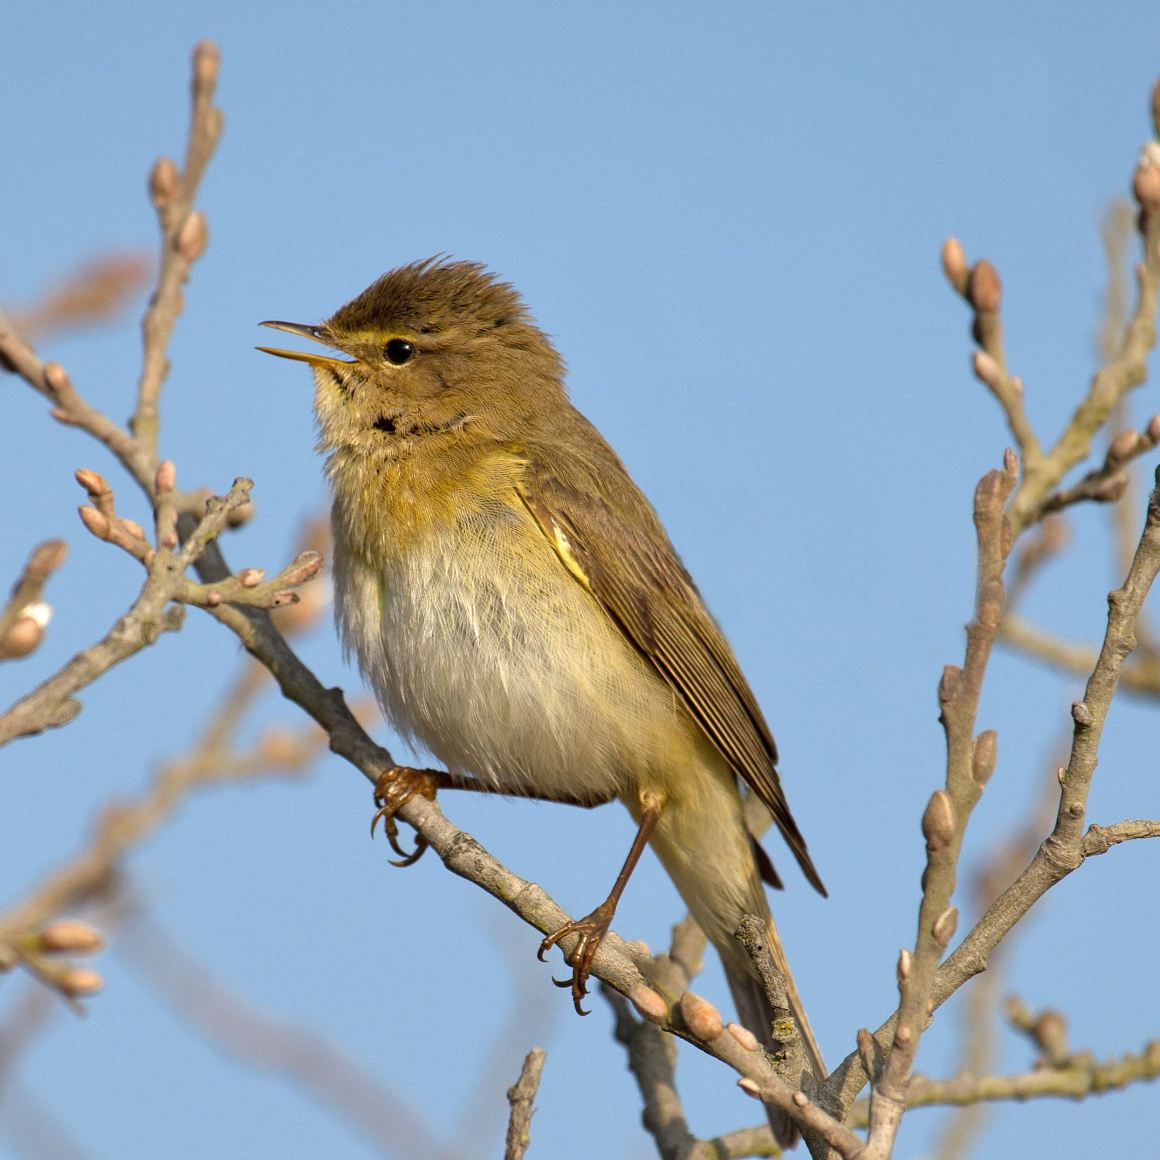 Willow warblers have 24-hour circadian rhythms even in the constant Arctic light. Credit: Andreas Trepte, www.photo-natur.net/Wikimedia Commons, CC BY-SA 2.5